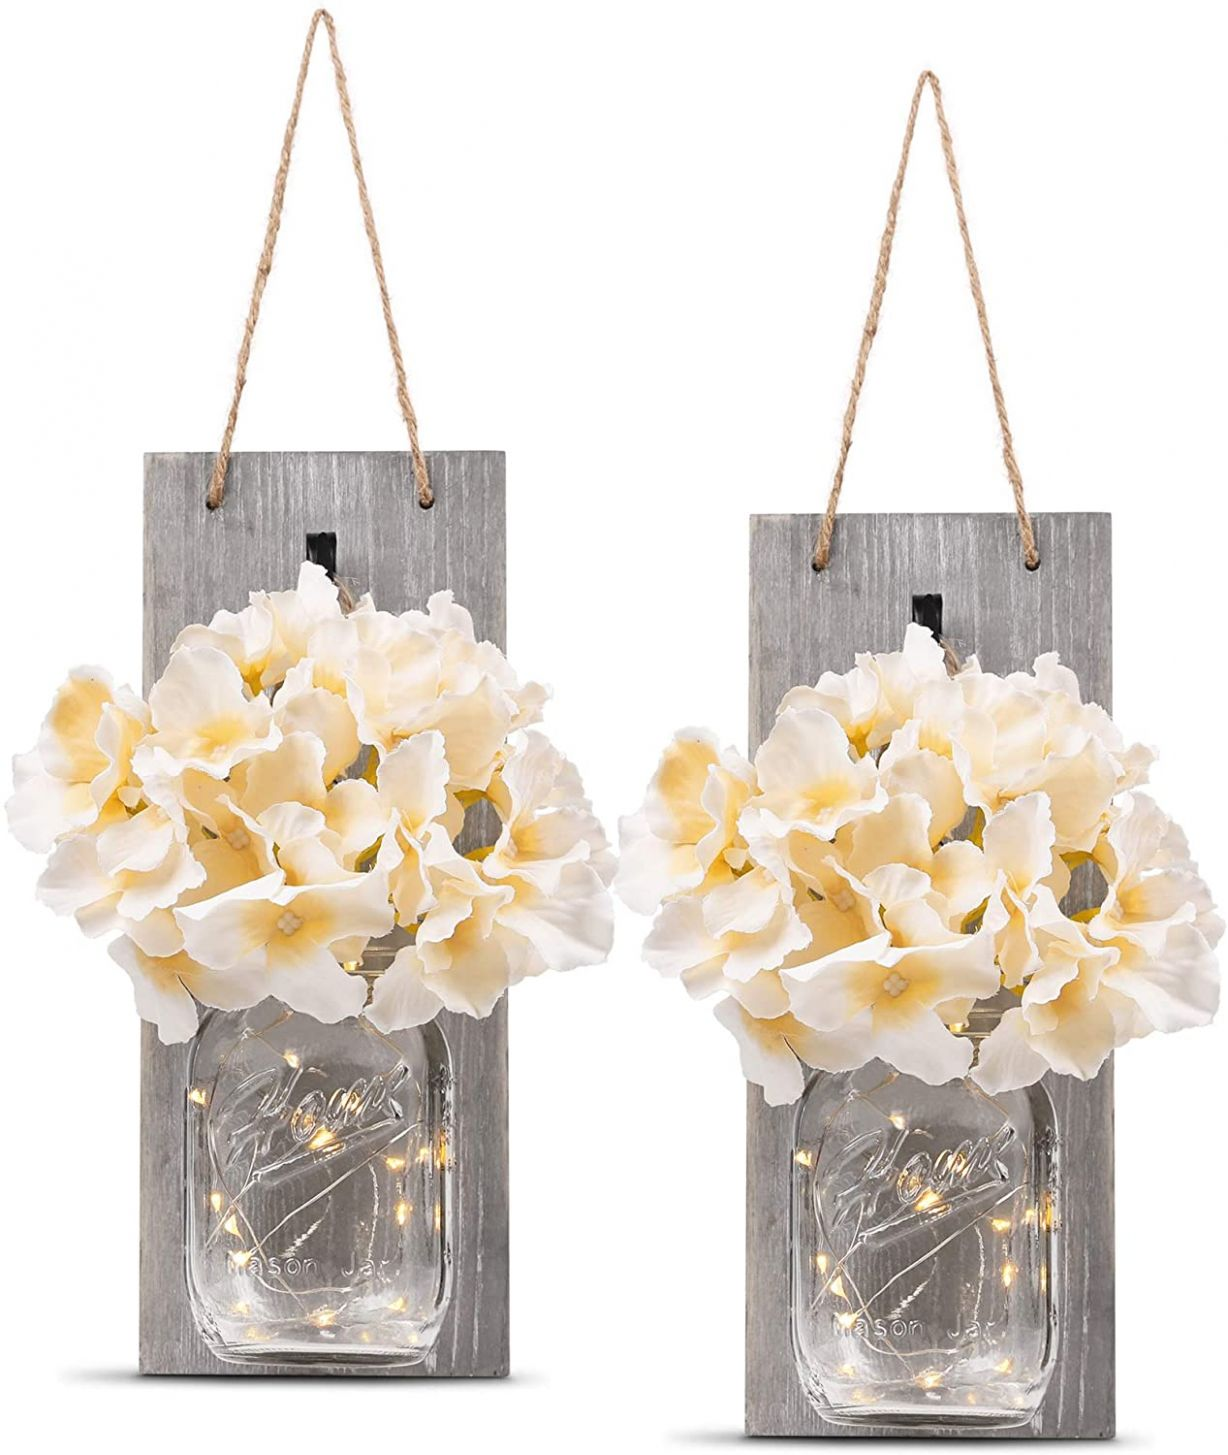 HOMKO Decorative Mason Jar Wall Decor - Rustic Wall Sconces with 11-Hour  Timer LED Fairy Lights and Flowers - Farmhouse Home Decor (Set of 11)